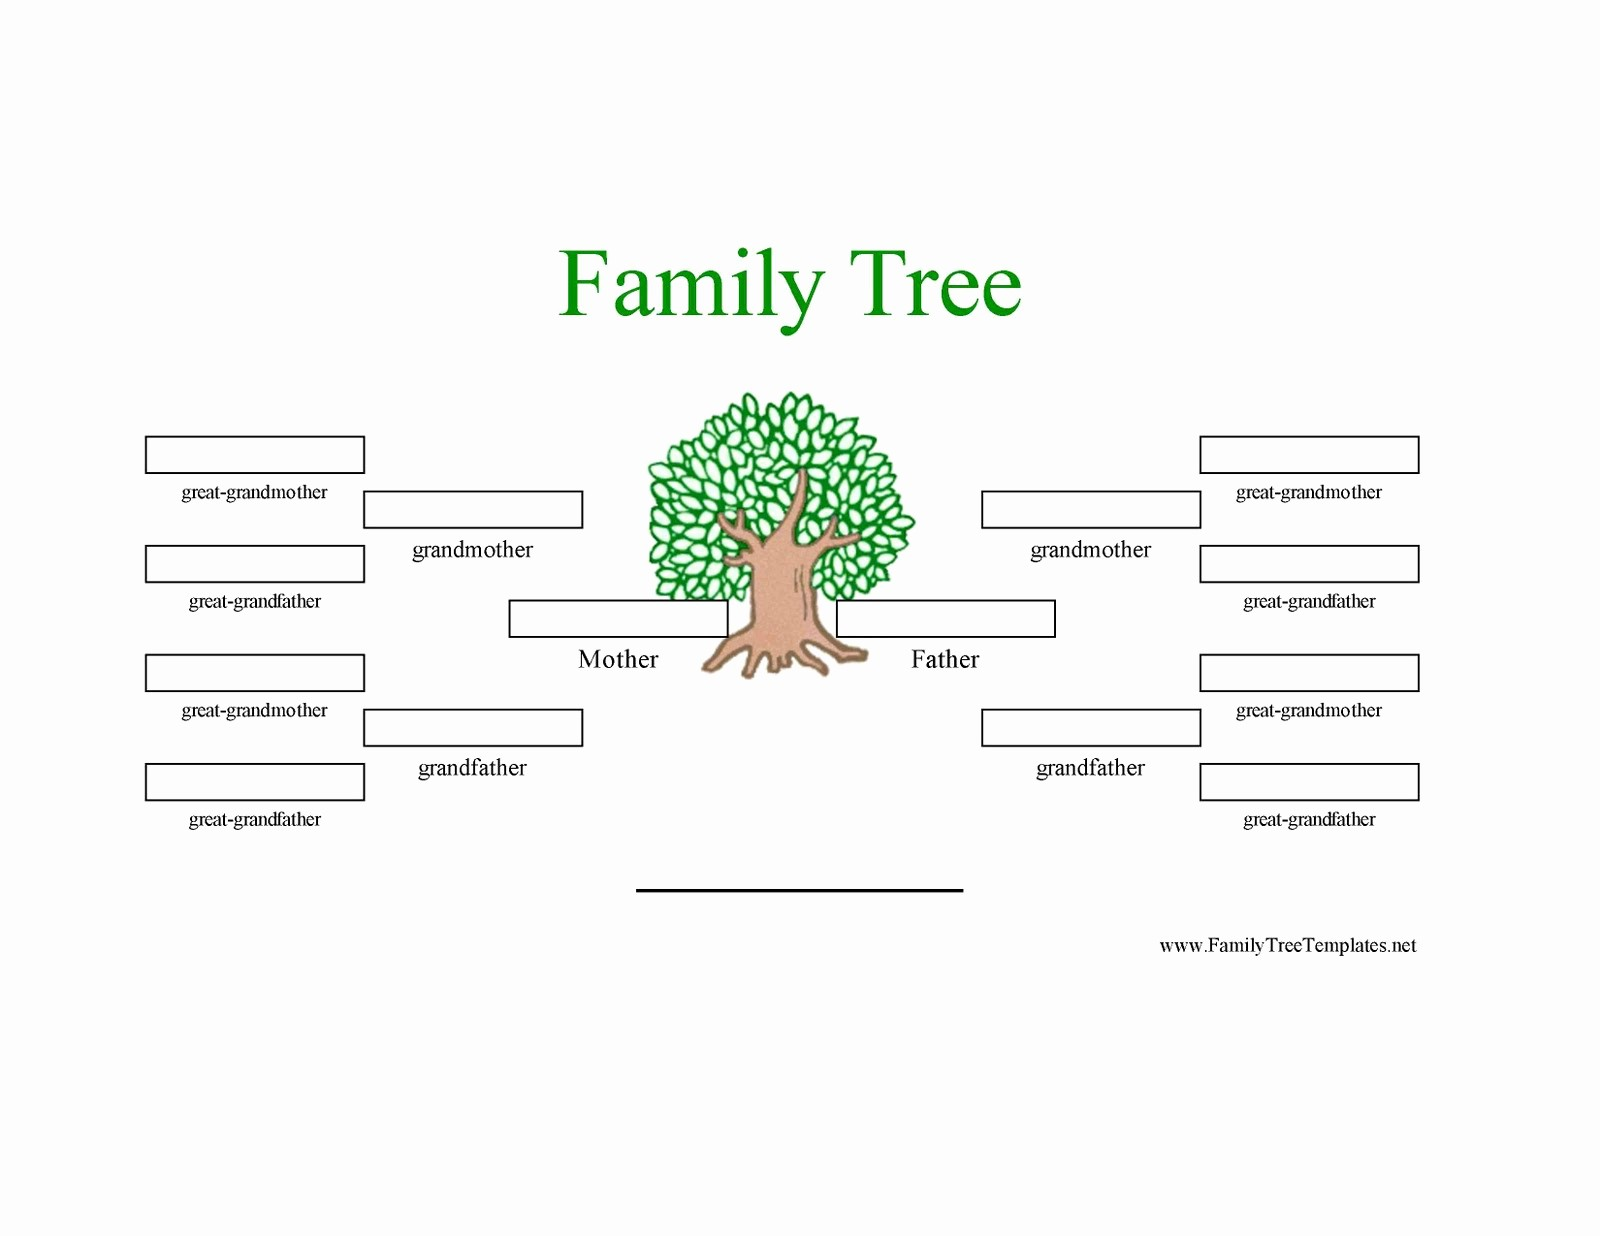 Family Tree Template 5 Generations Luxury 6 Generation Family Tree Template to Pin On